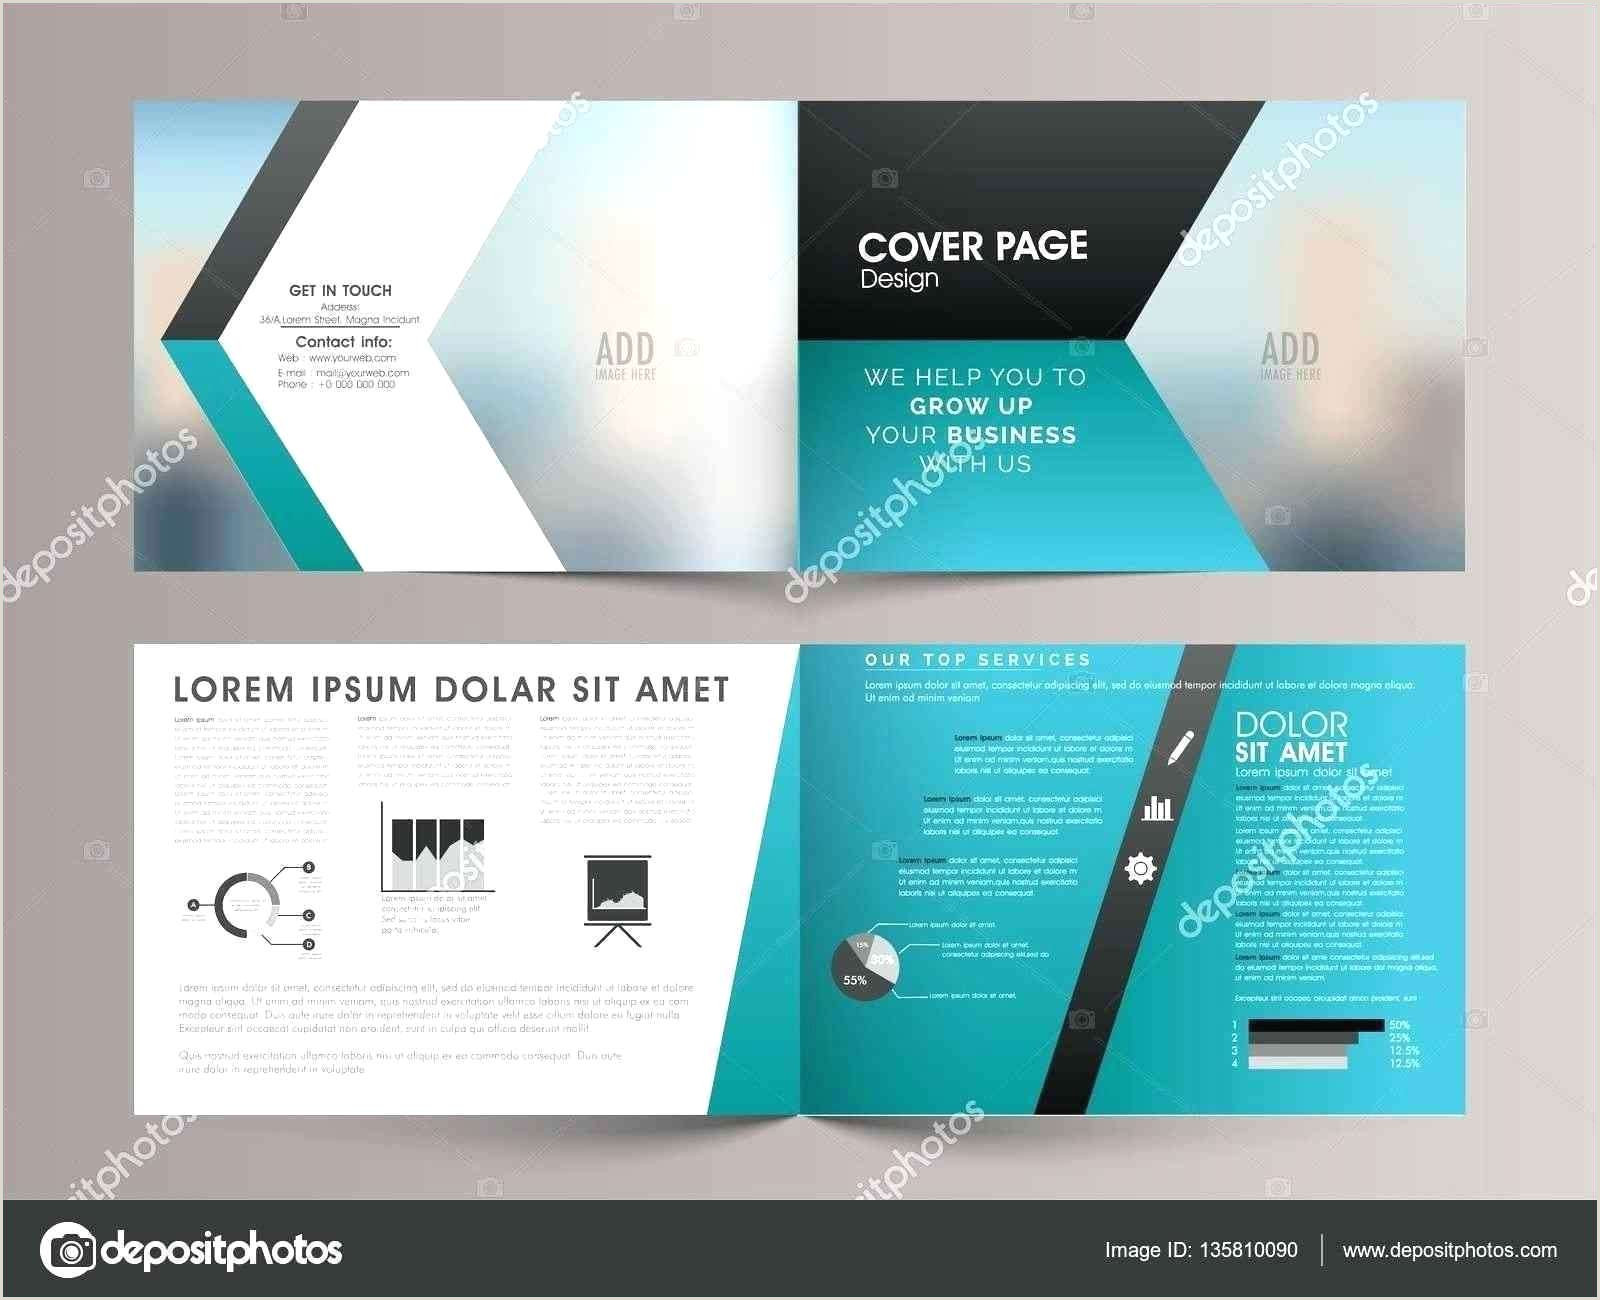 Marketing Pitch Example Startup Powerpoint Templates Free Download Beneficial